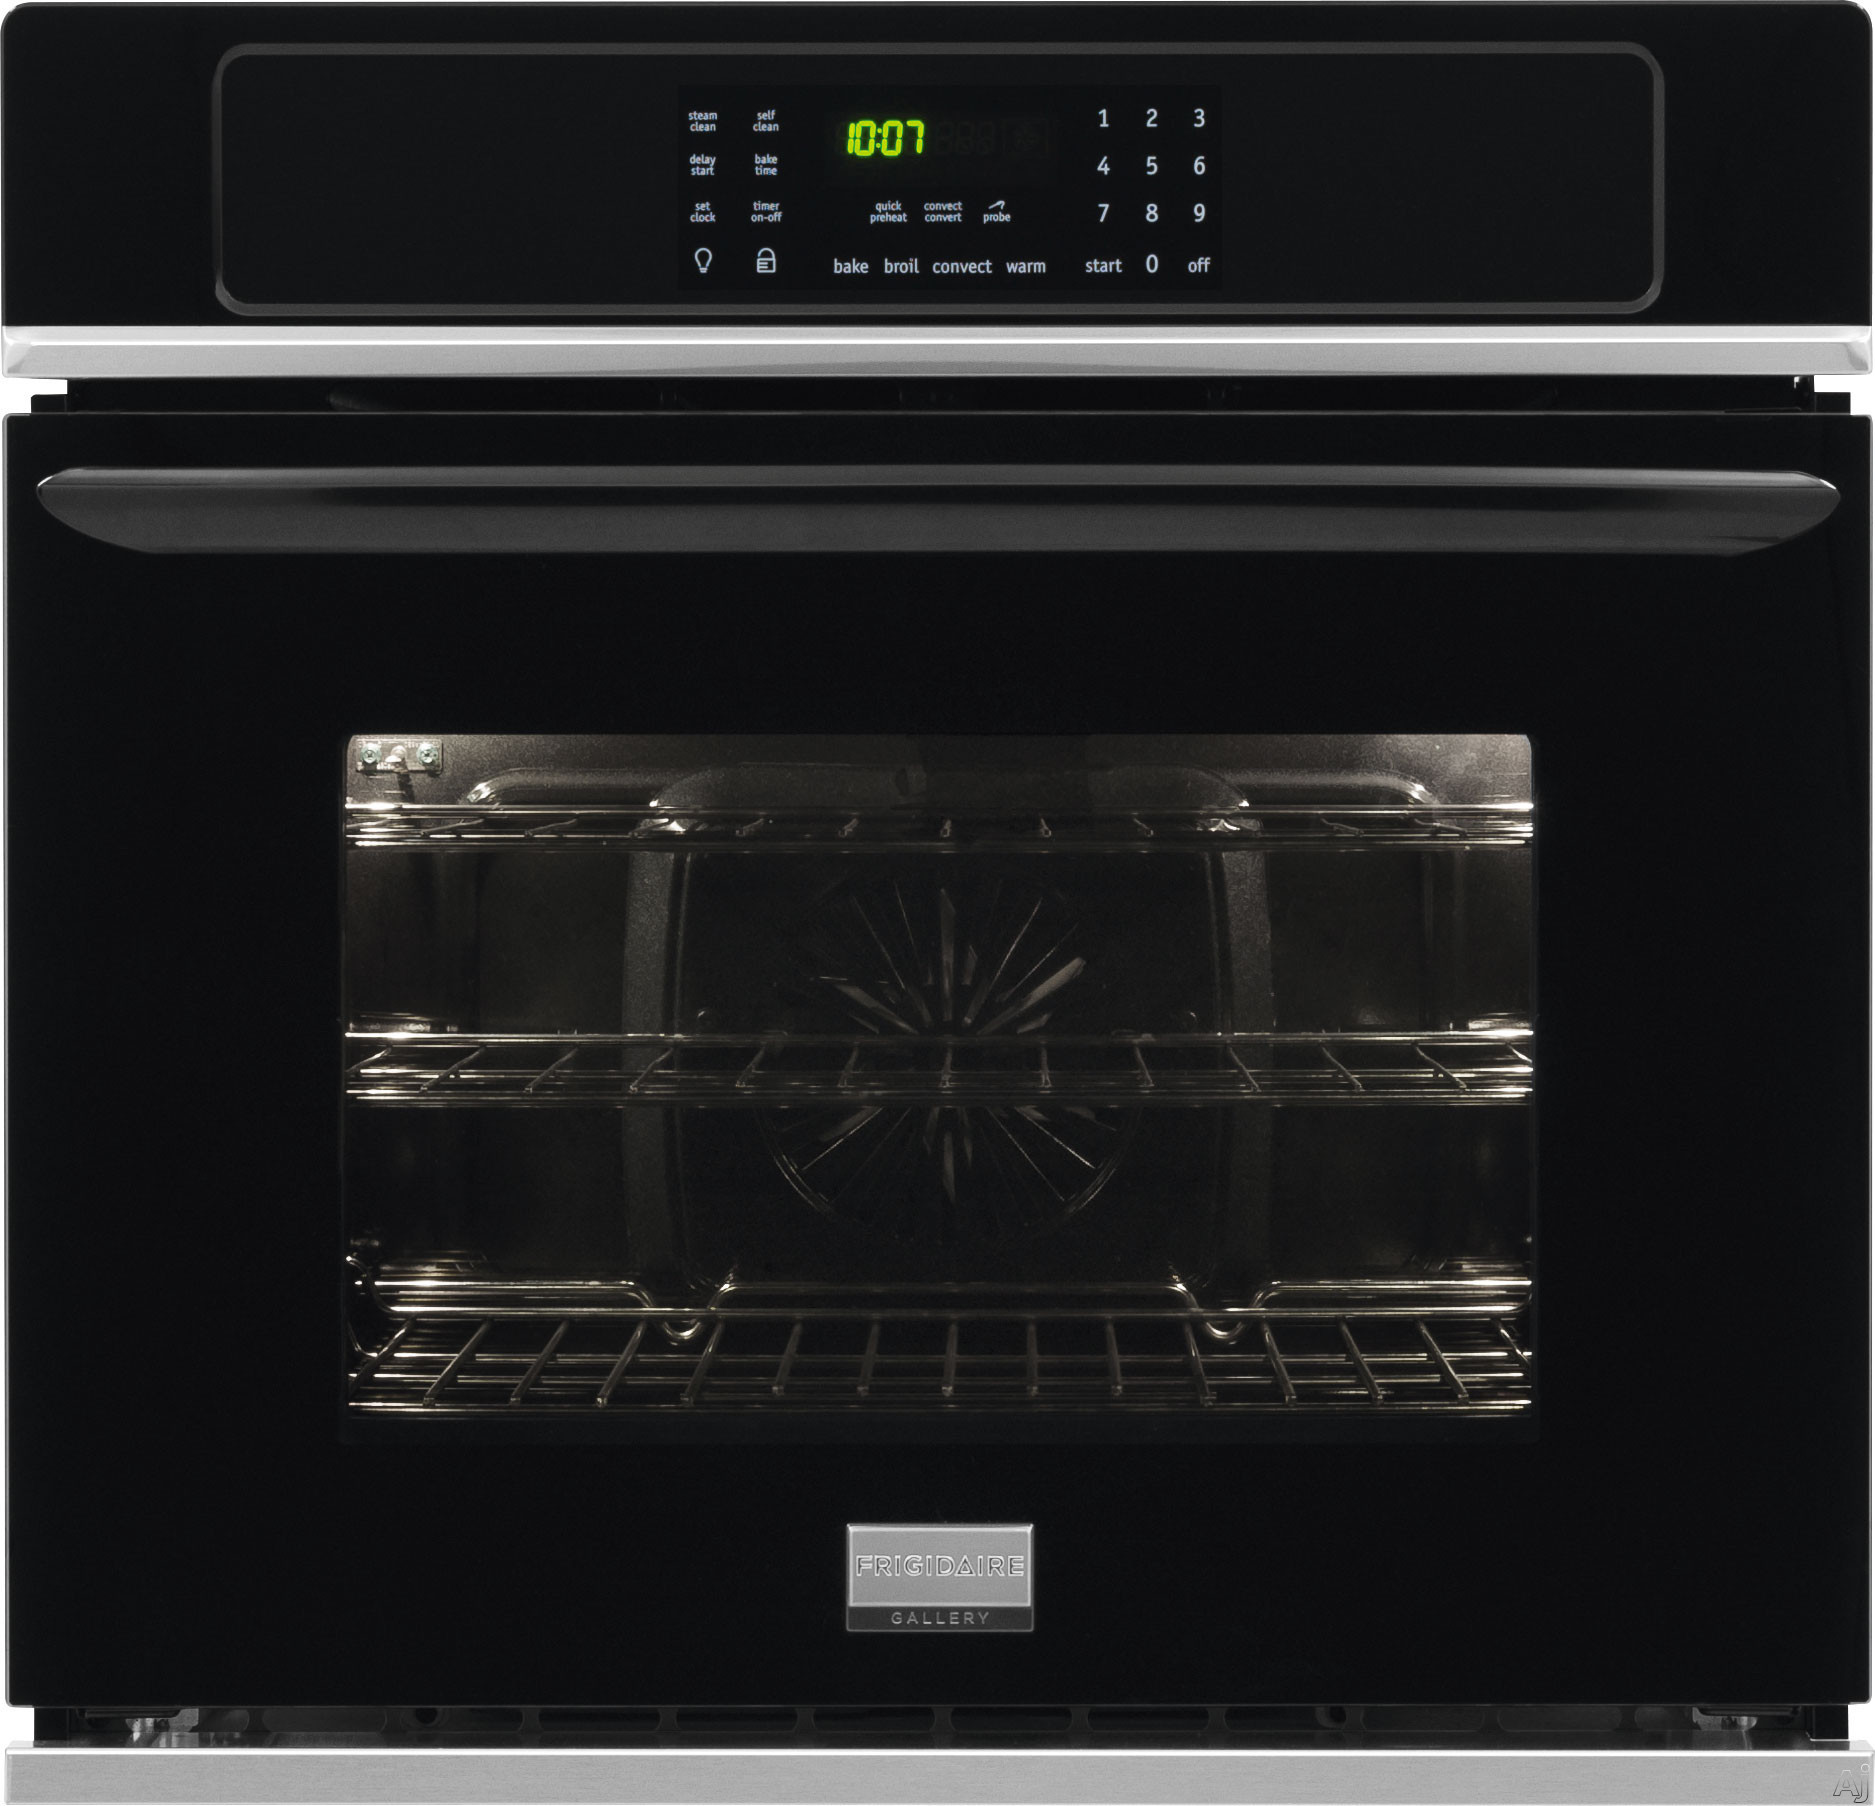 "Frigidaire Gallery Series FGEW3065PB 30 Inch Single Electric Wall Oven with True Convection, Quick Preheat, Effortlessâ""¢ Convection, Delay Start, One-Touch Keep Warm, Auto Shut-Off, Temperature P"